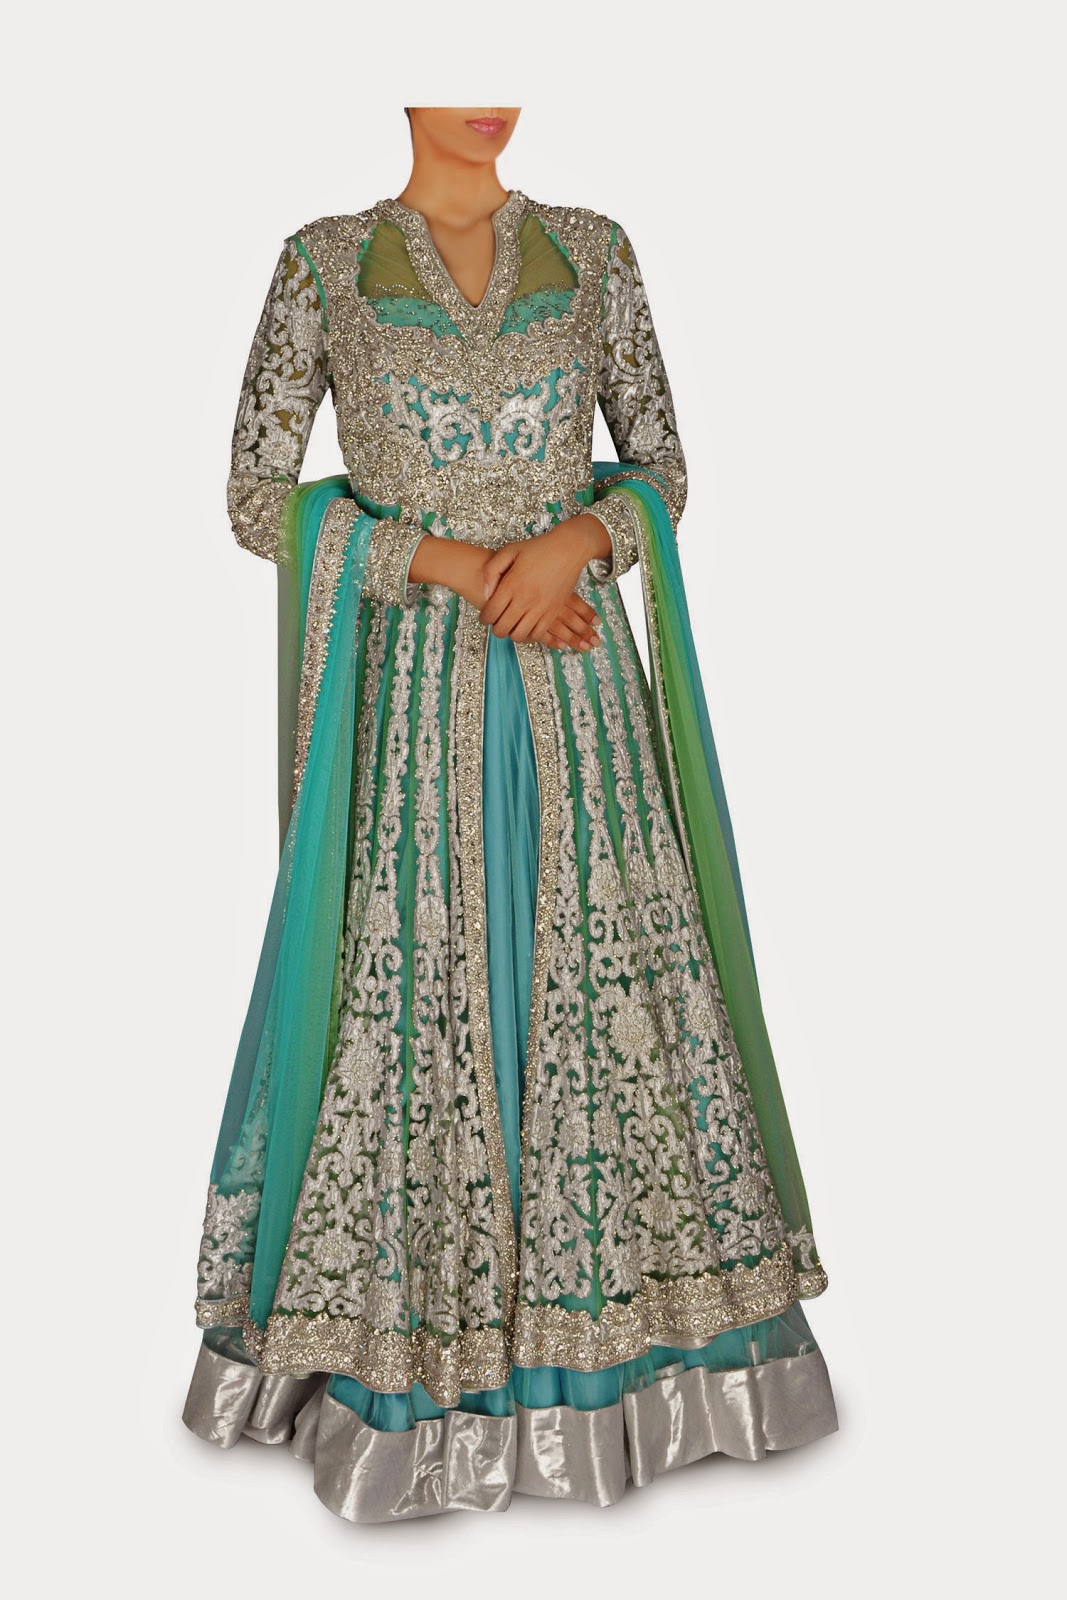 trendy indian wedding dresses online indian wedding dresses online Elegant Indian Clothing Wedding Outfits Trendy Indian Wedding Dresses Online With Traditional Touch